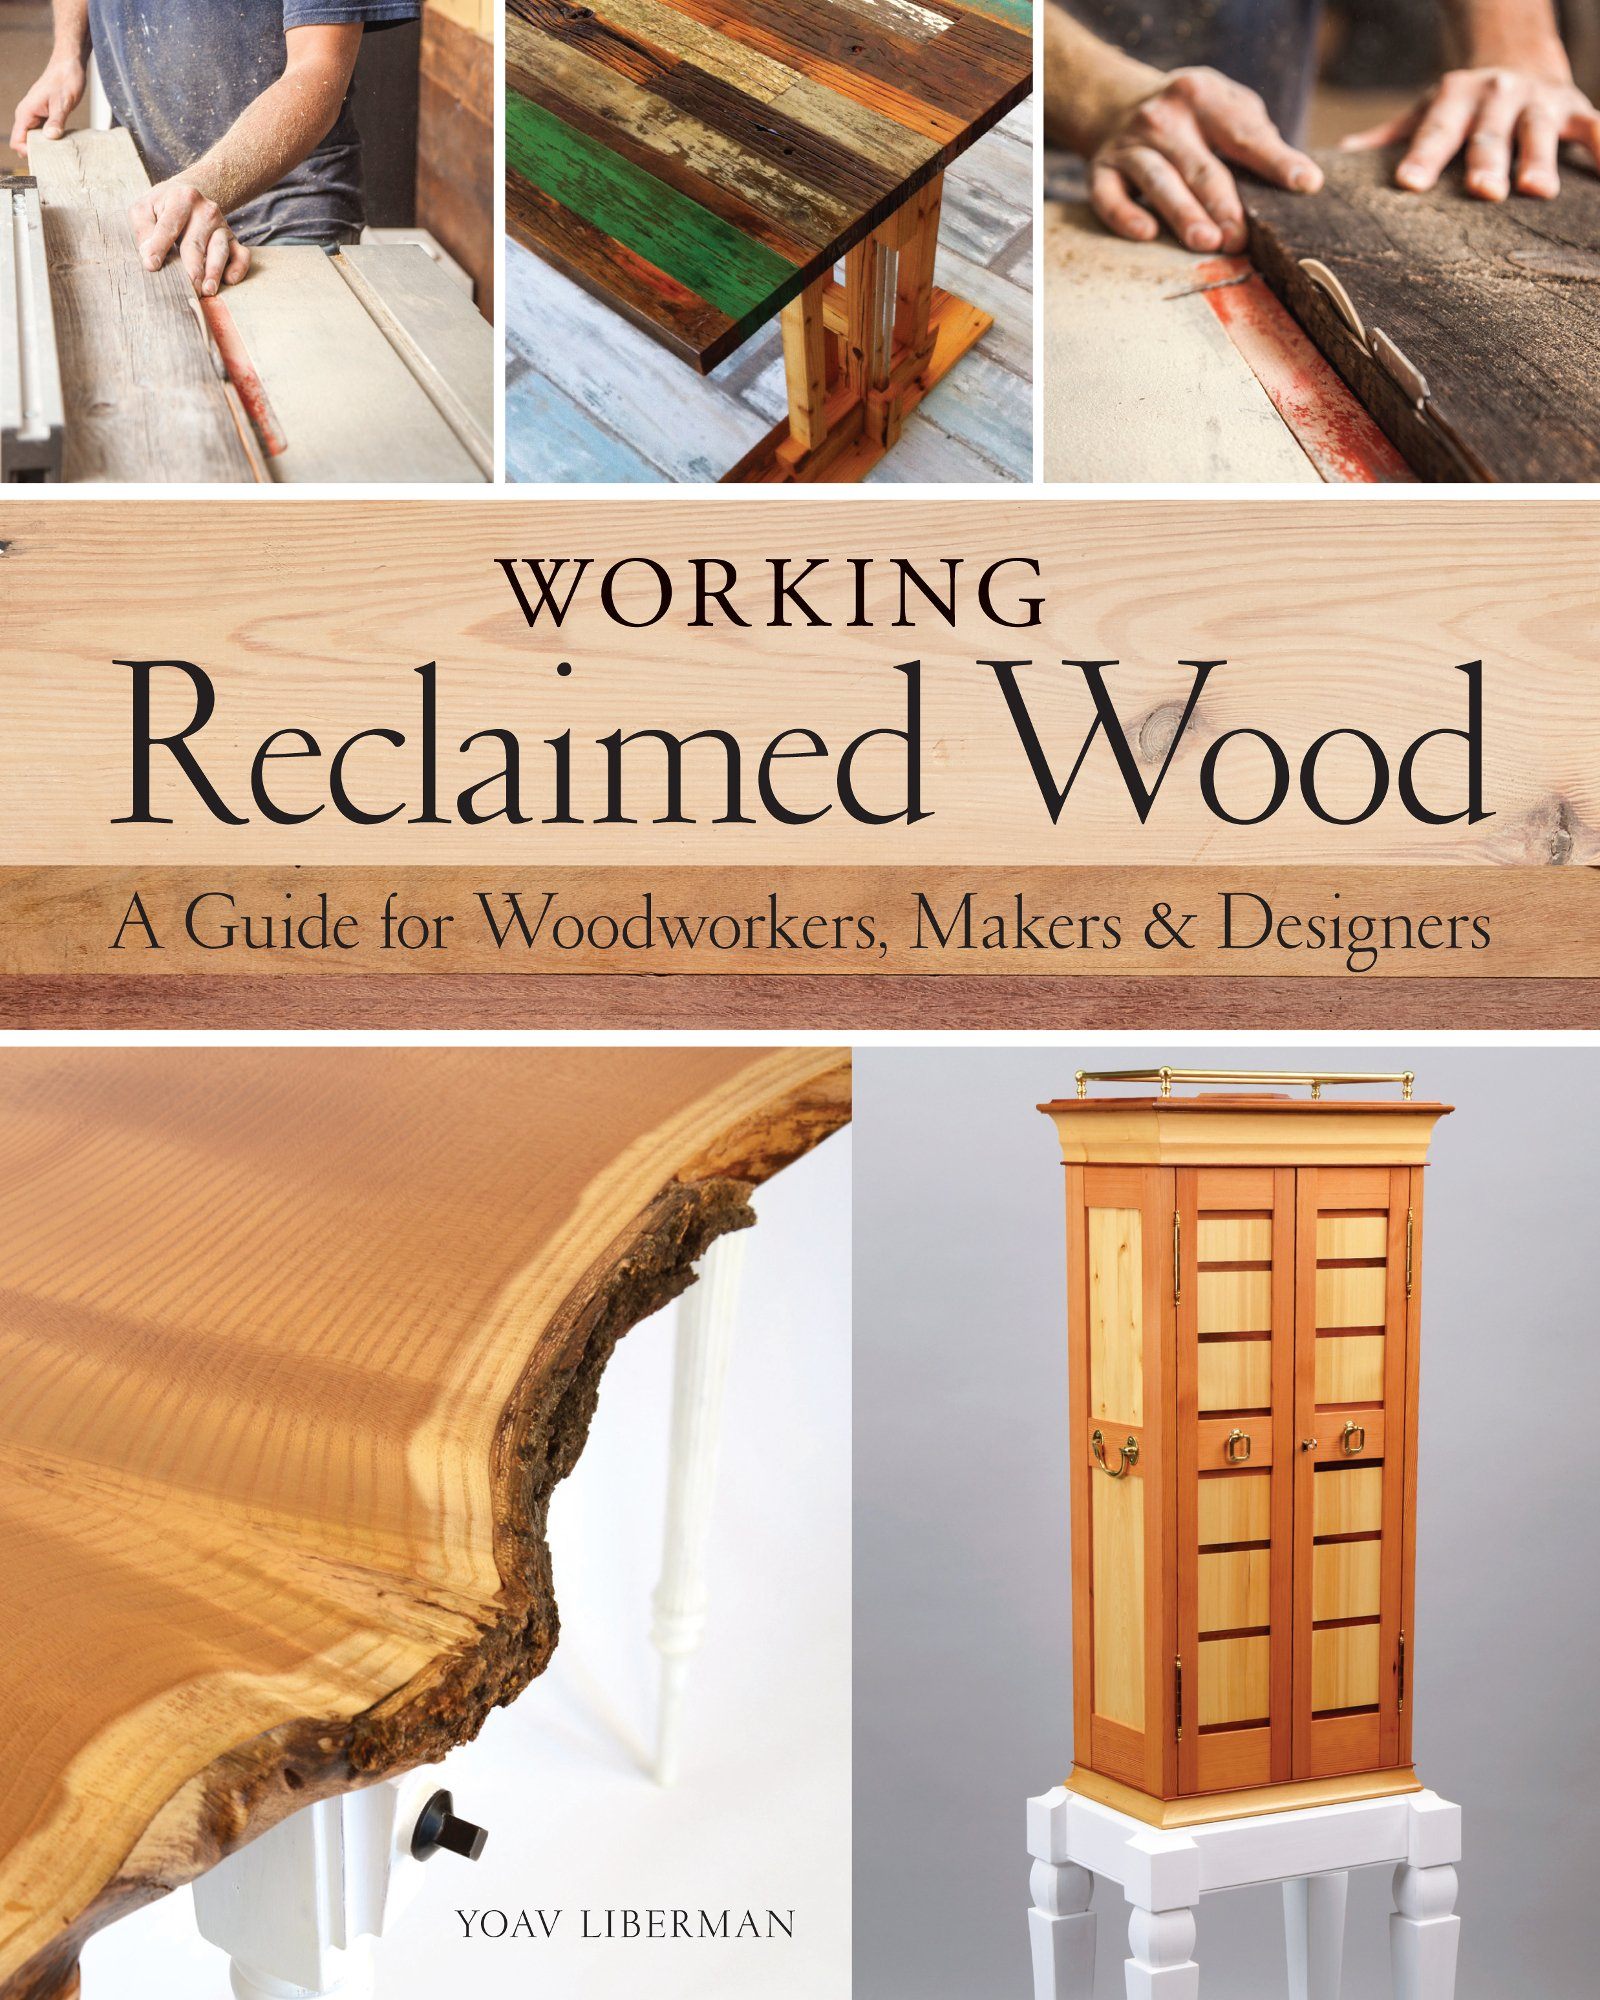 Working Reclaimed Wood A Guide for Woodworkers Makers & Designers